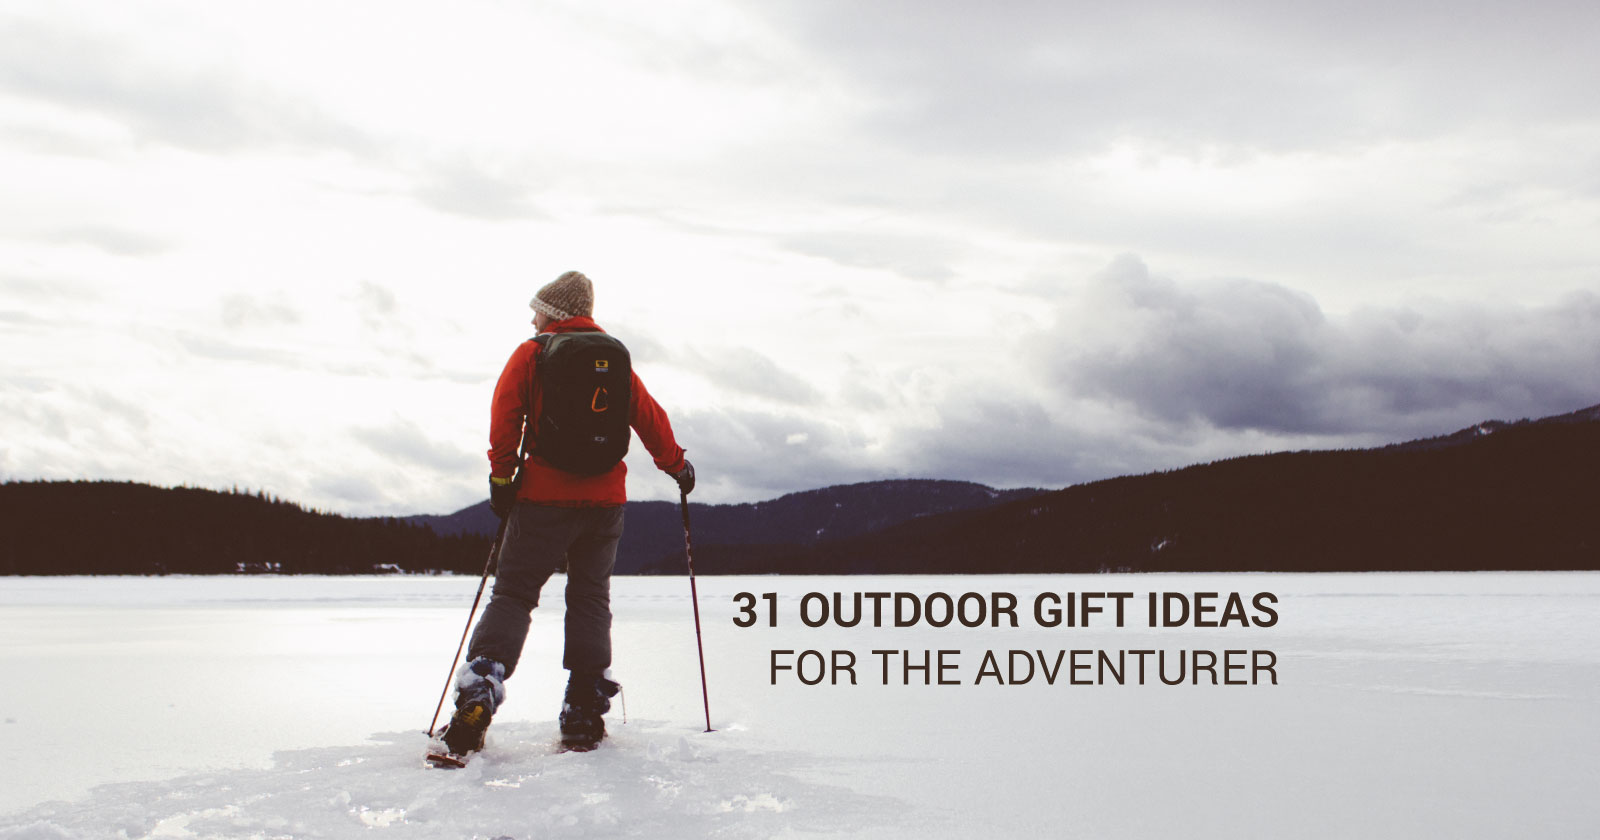 31 Outdoor Gifts for the Adventurer